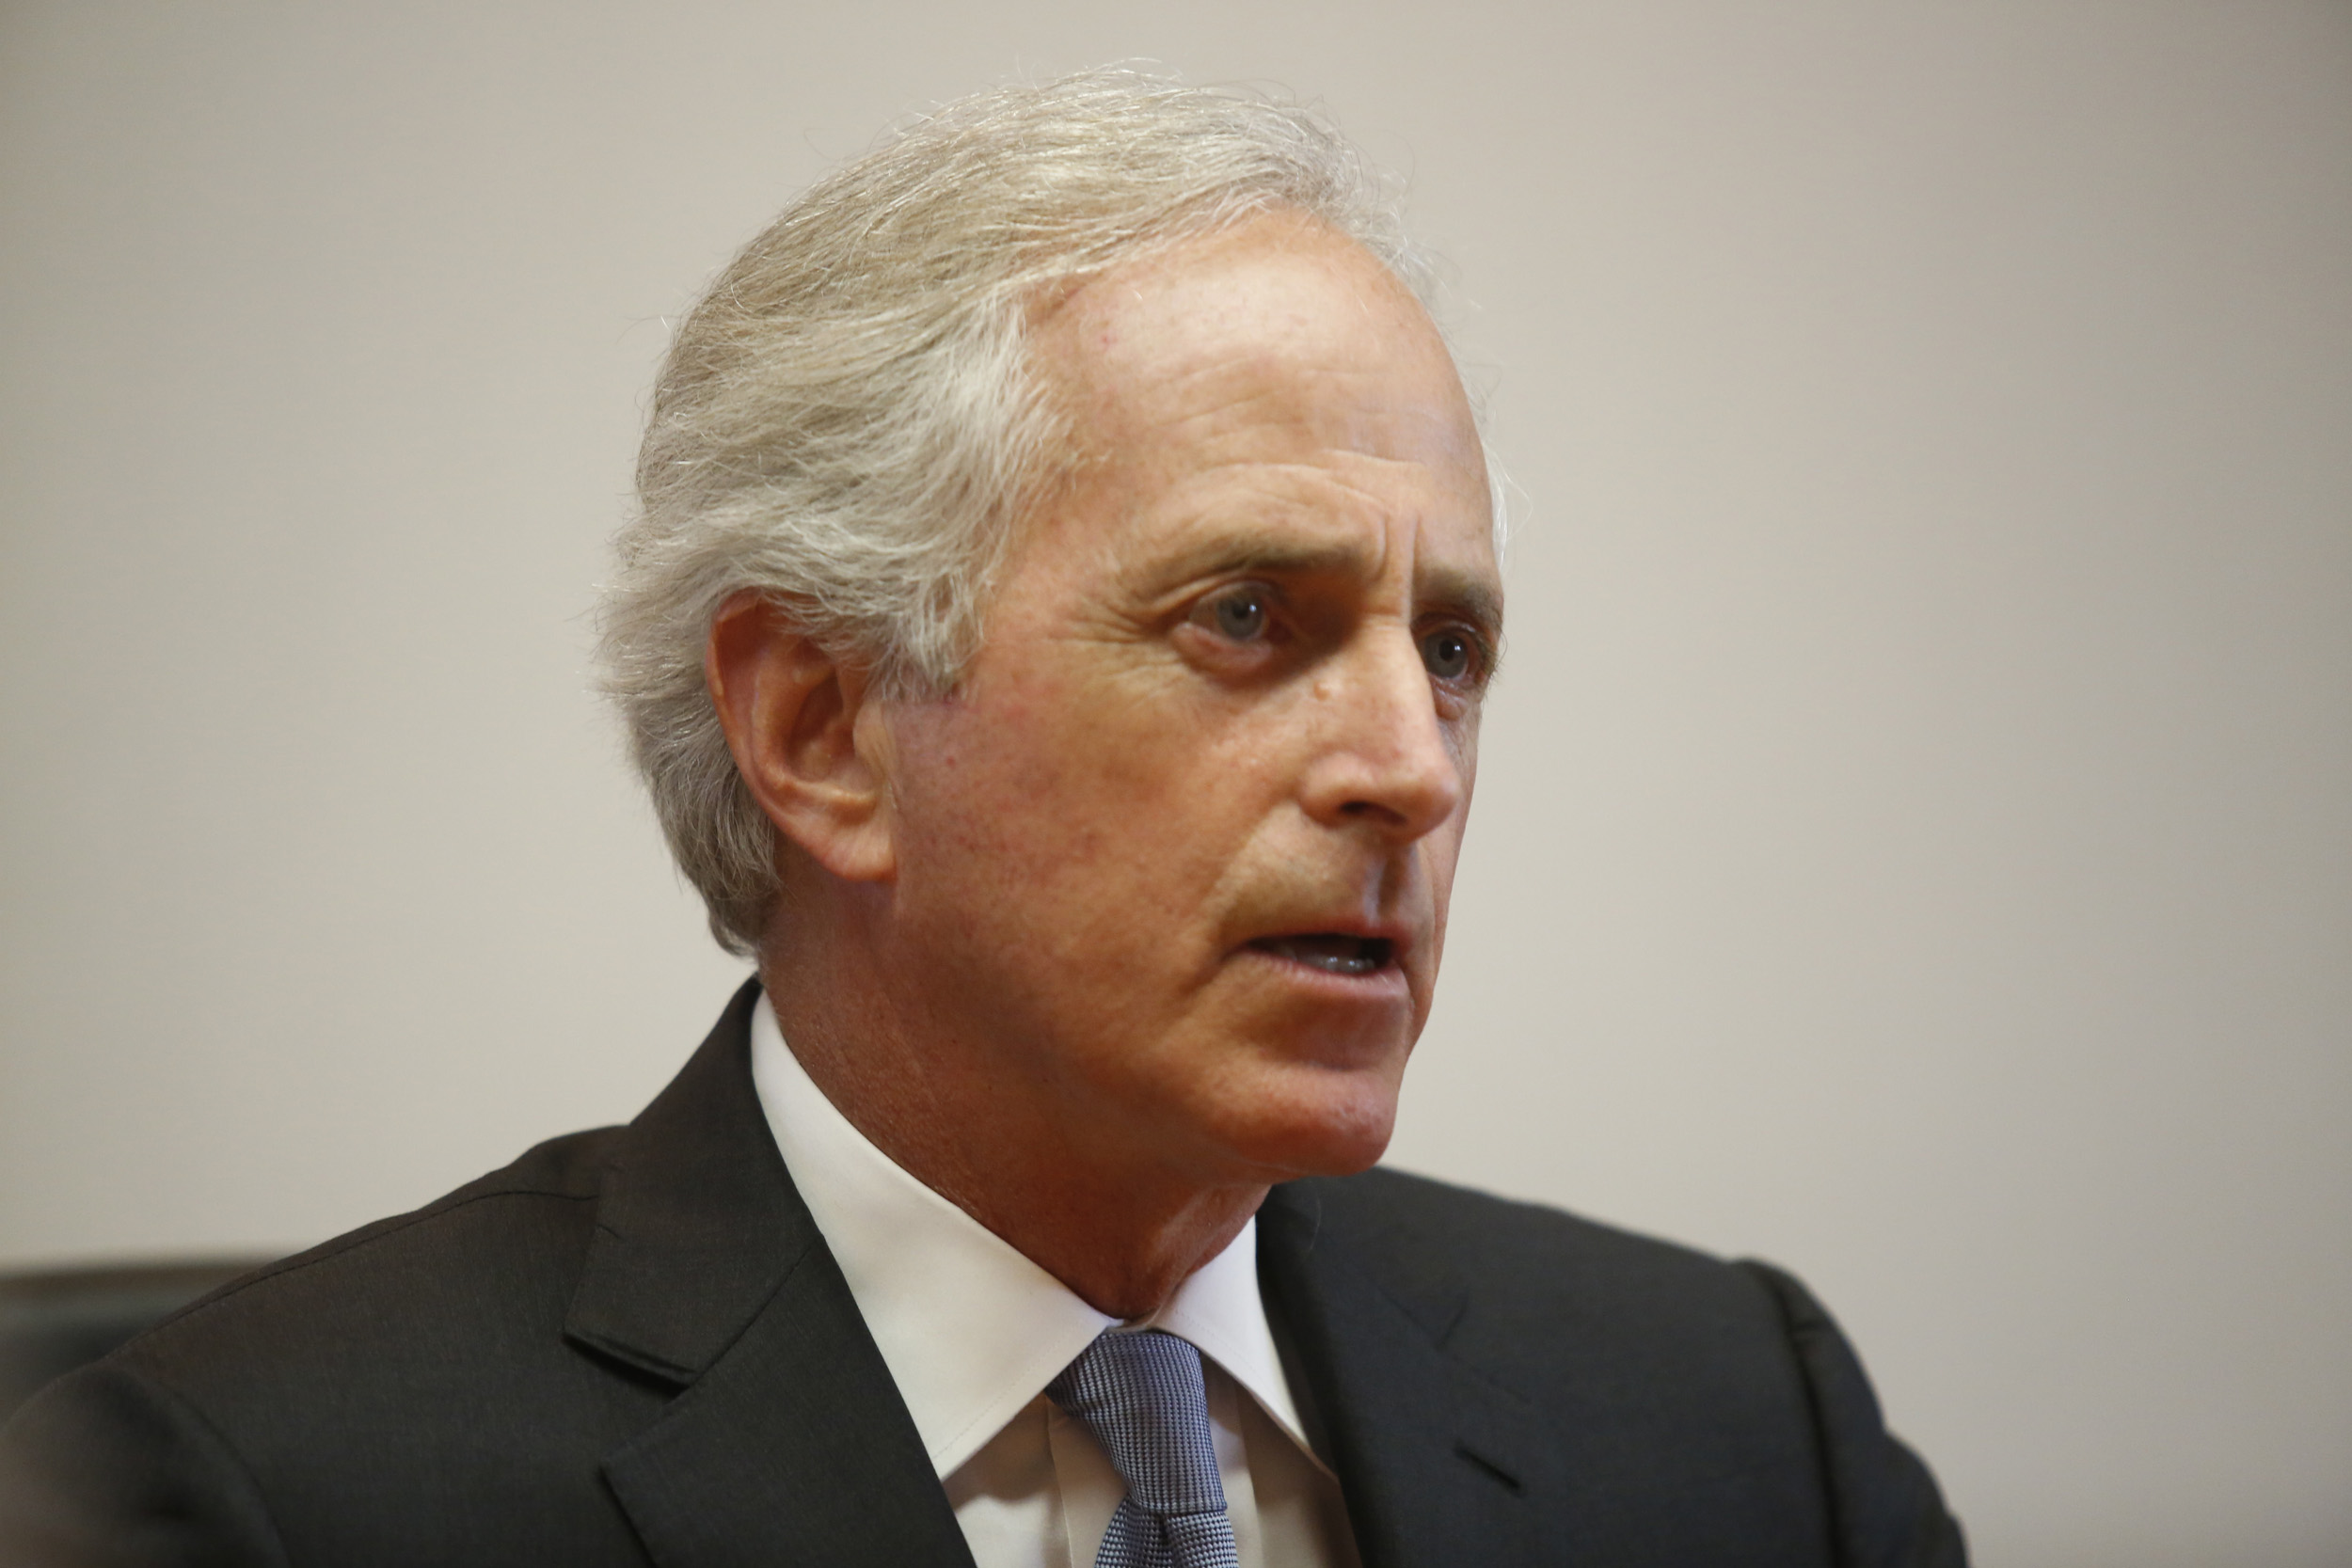 U.S. Sen. Bob Corker speaks to the Chattanooga Times Free Press staff in Chattanooga, Tenn. on Aug. 20, 2014.